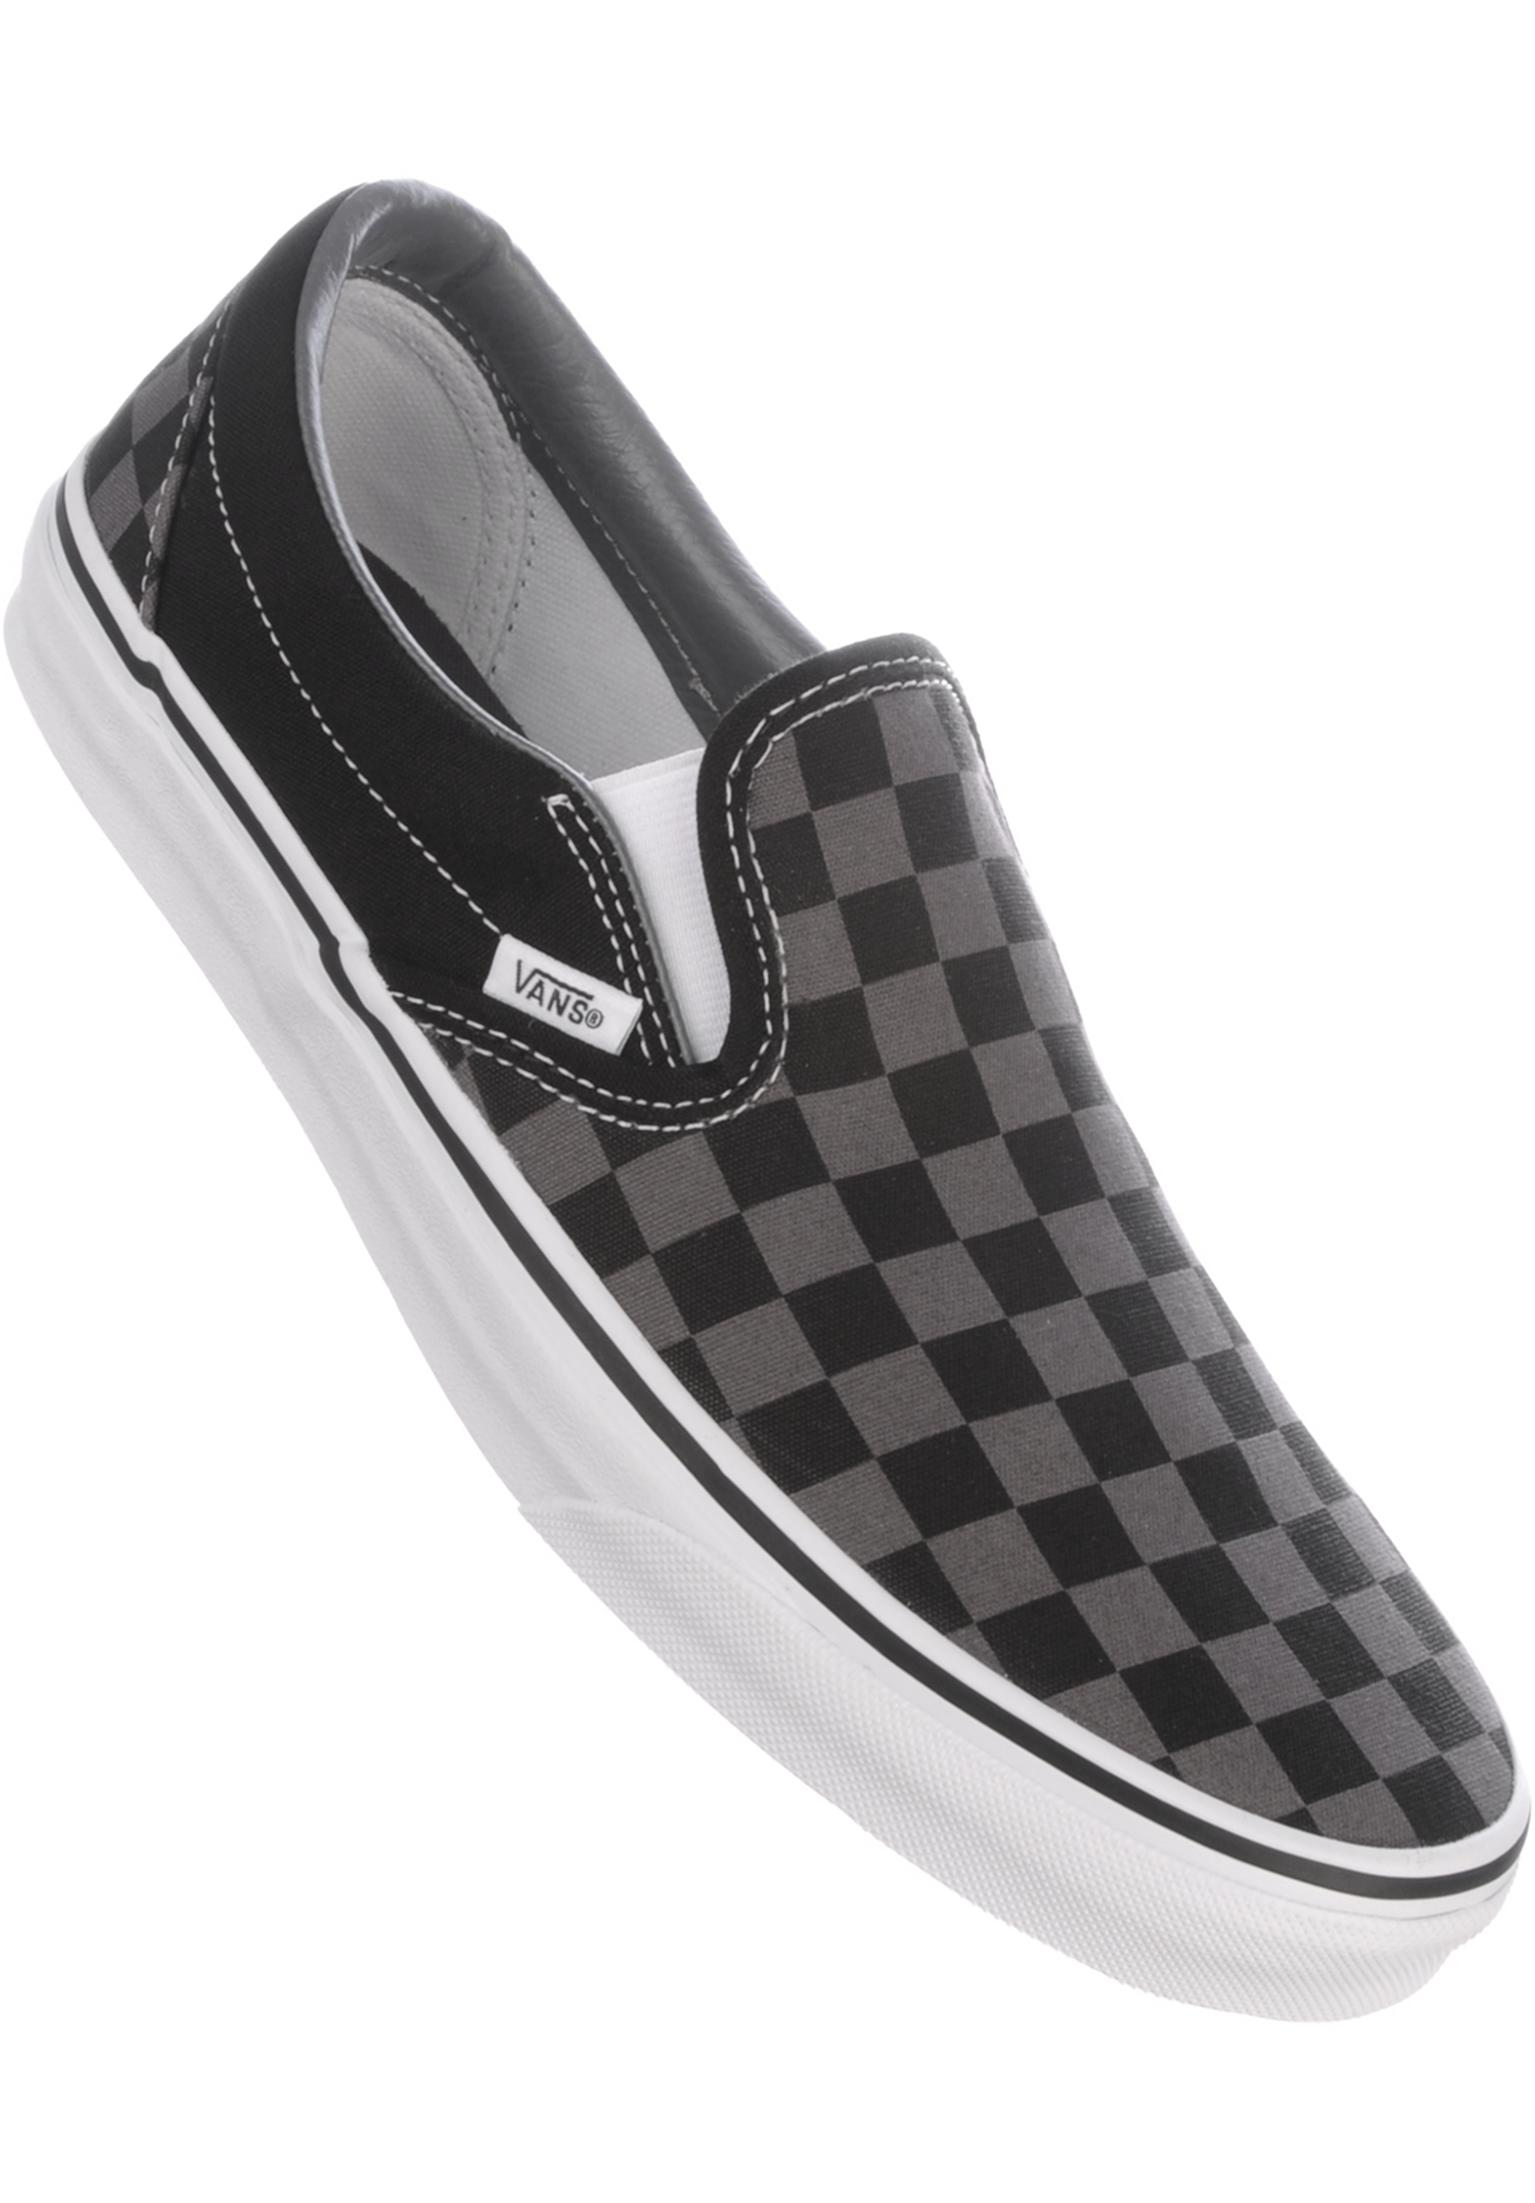 2567d9194e40a8 Classic-Slip-On Vans All Shoes in black-pewter-checkerboard for Men ...